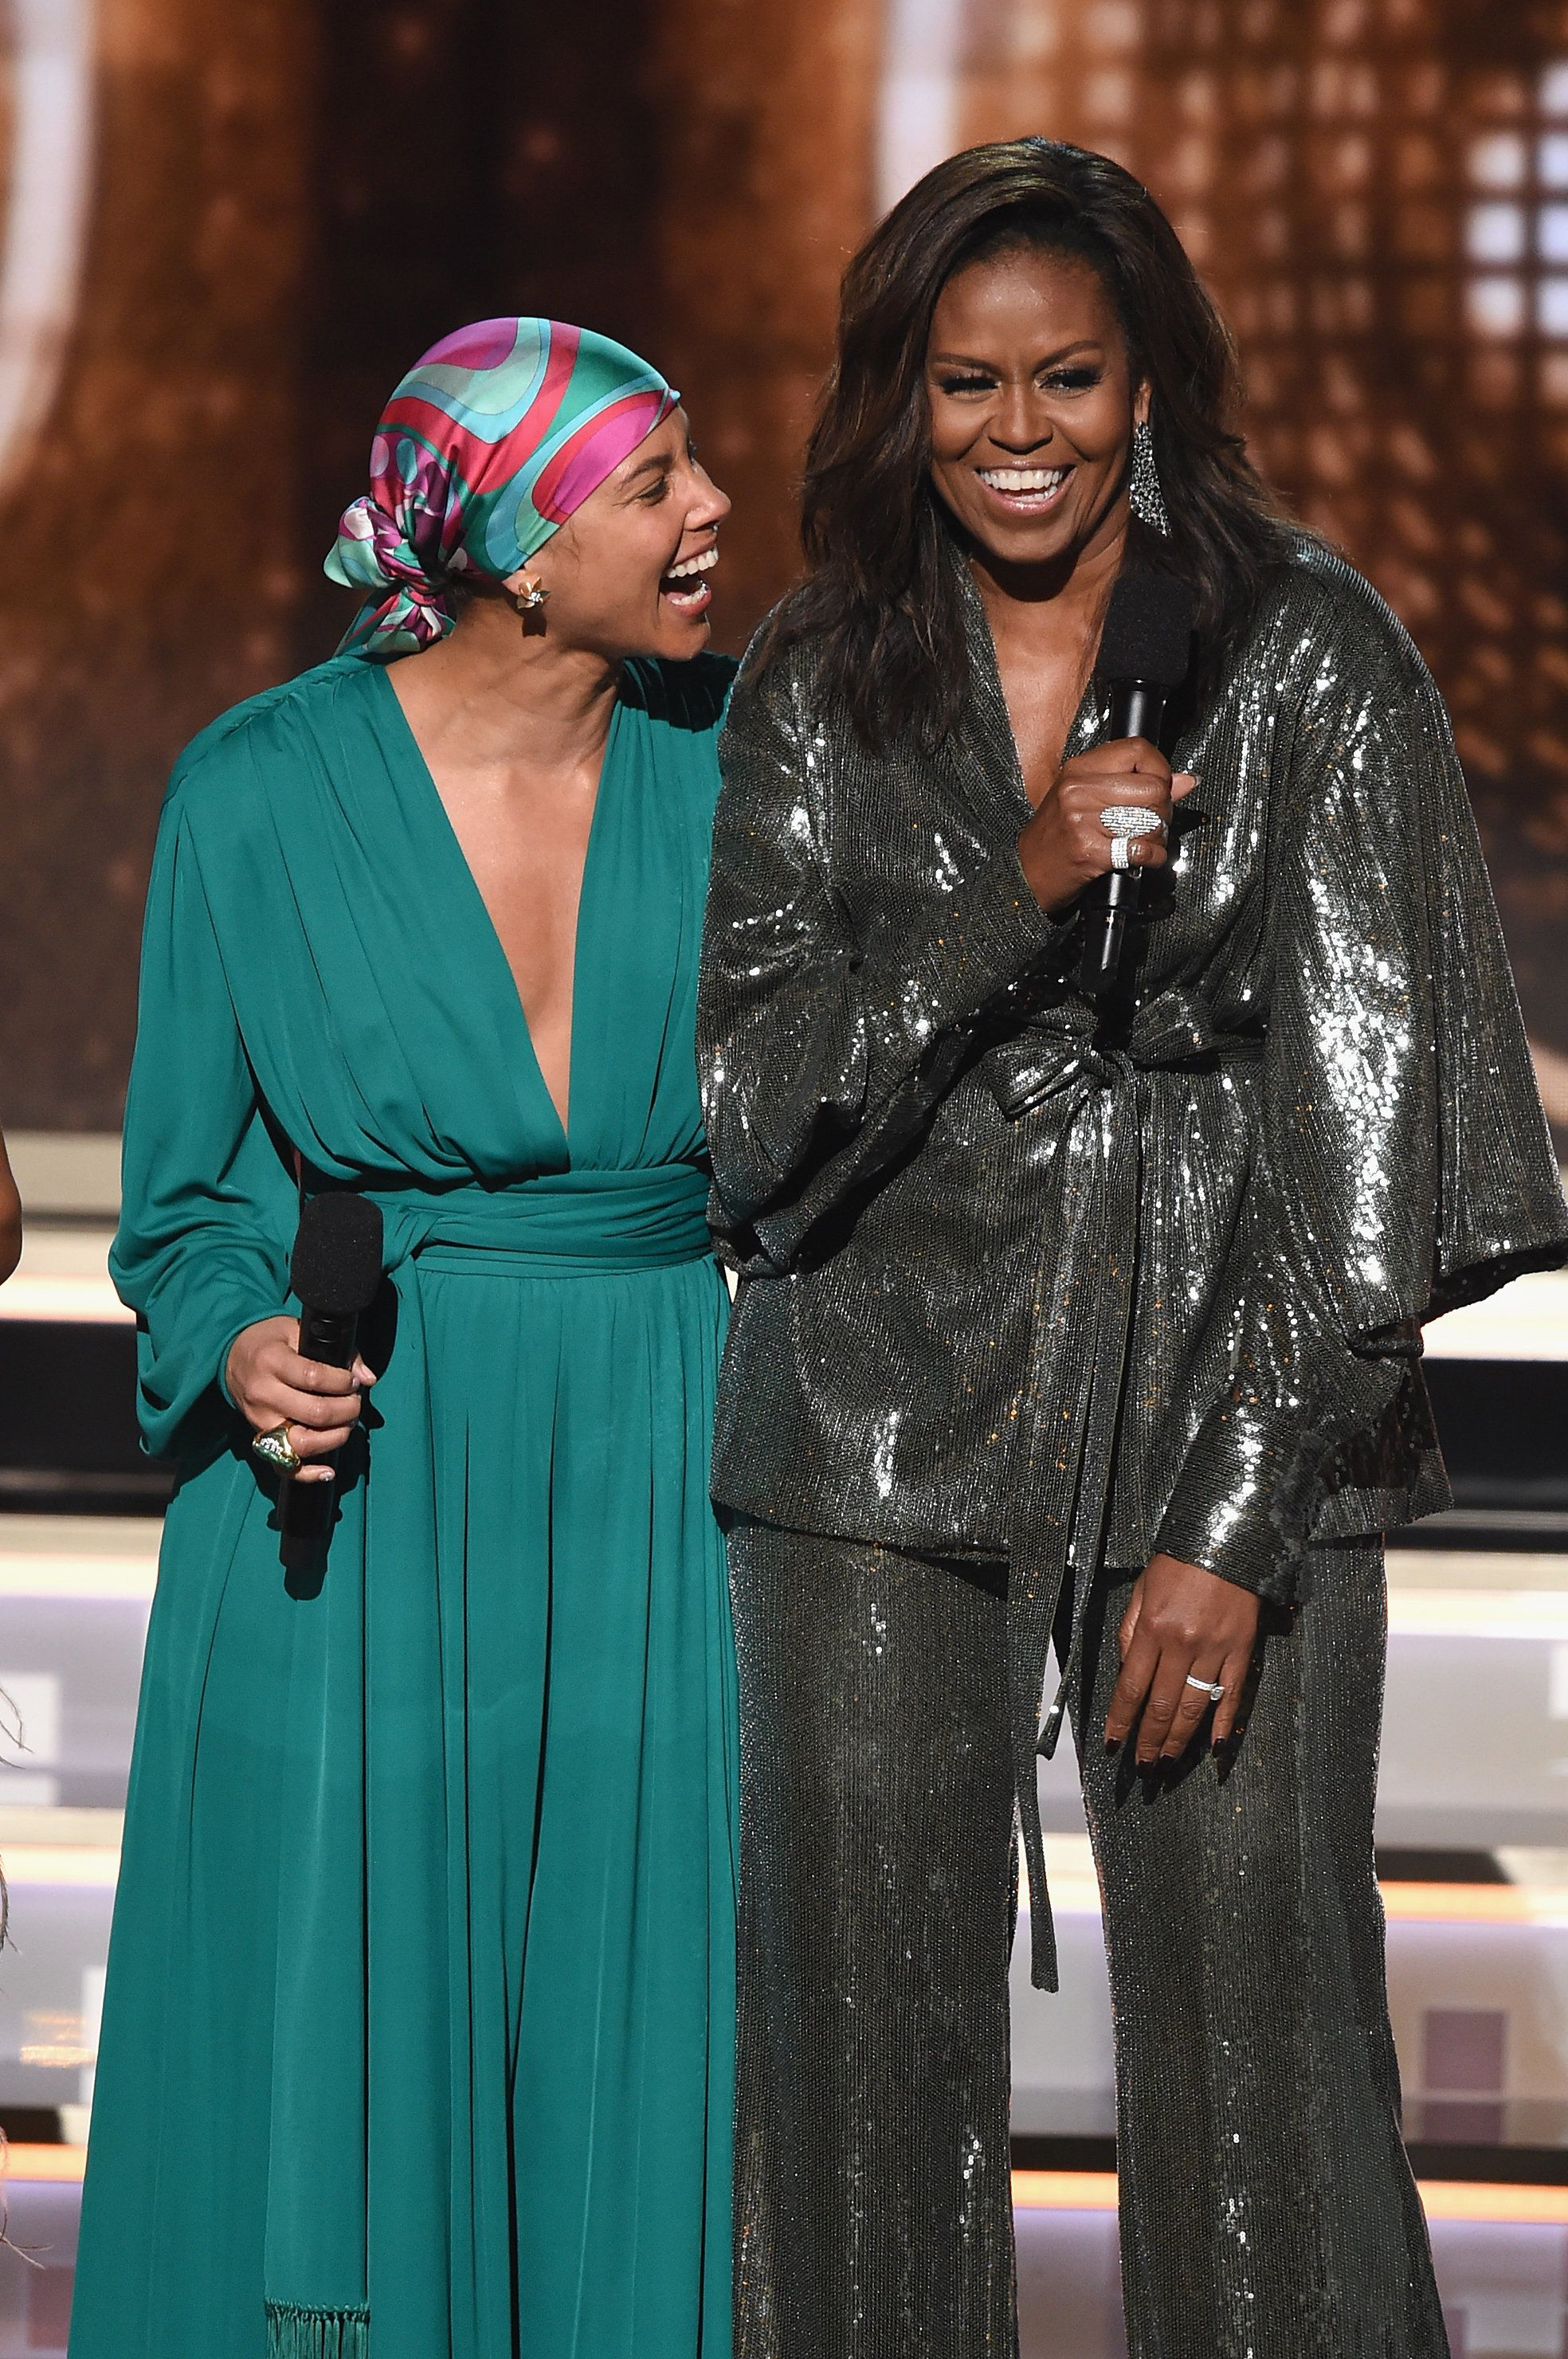 LOS ANGELES, CA - FEBRUARY 10:  Alicia Keys (L) and Michelle Obama speak during the 61st Annual GRAMMY Awards at Staples Center on February 10, 2019 in Los Angeles, California.  (Photo by Kevin Winter/Getty Images for The Recording Academy)